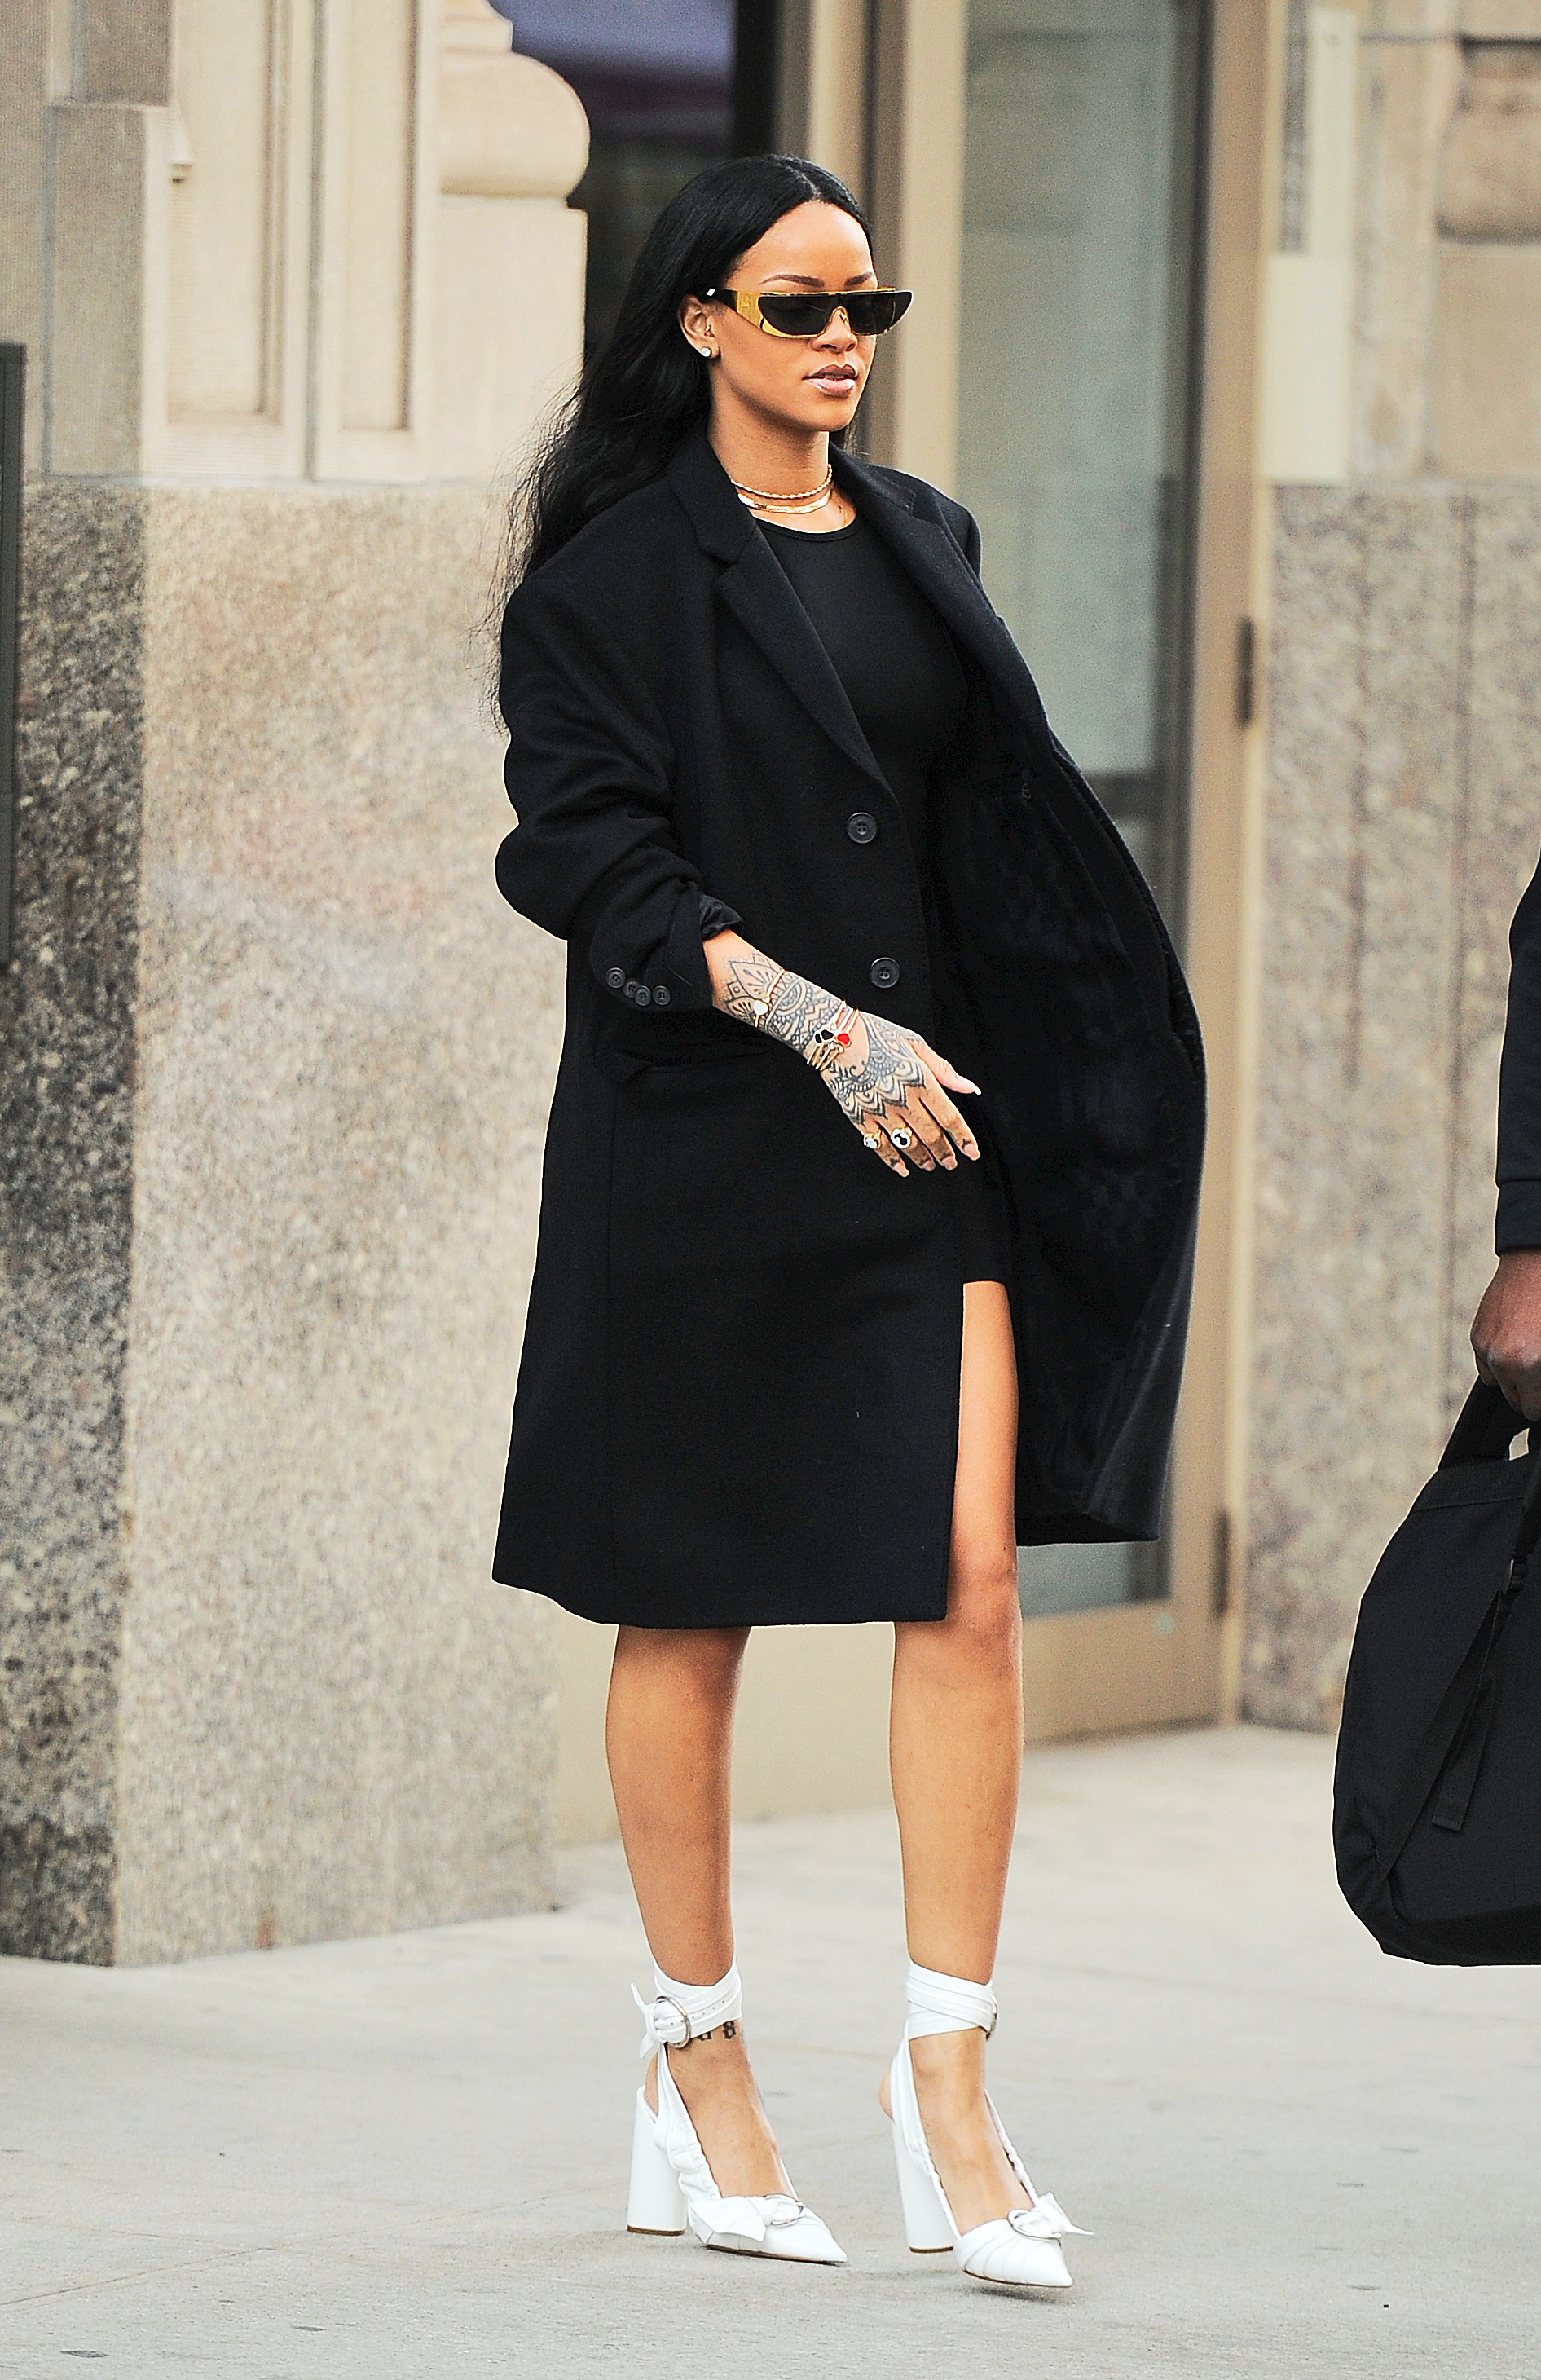 Rihanna looks like a fashionista as she heads out of her apartment in NYC